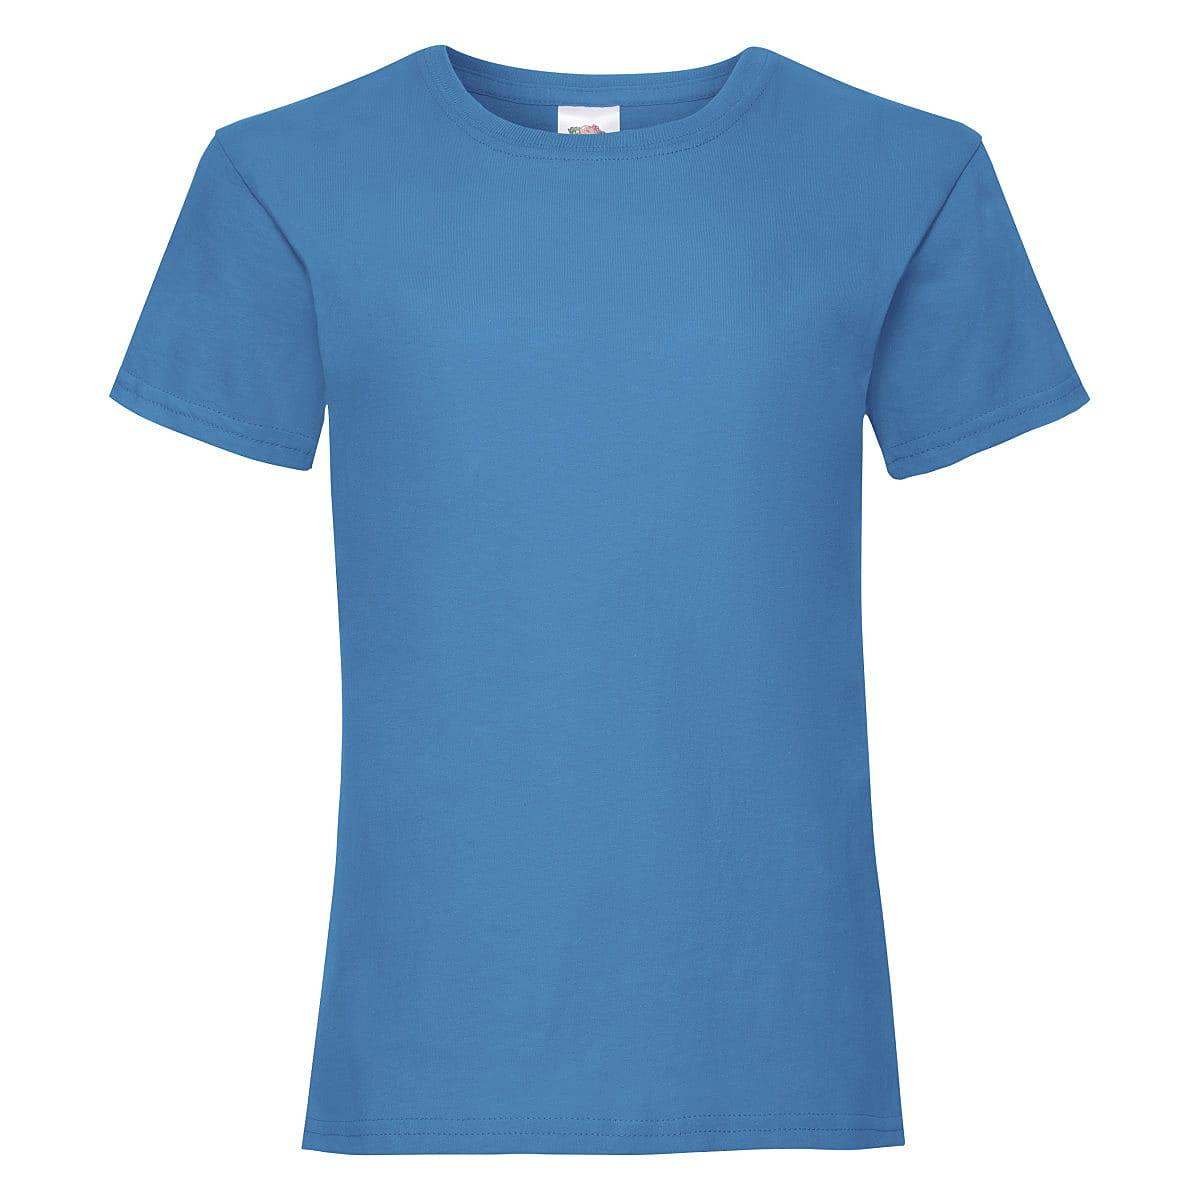 Fruit Of The Loom Girls Valueweight T-Shirt in Azure Blue (Product Code: 61005)